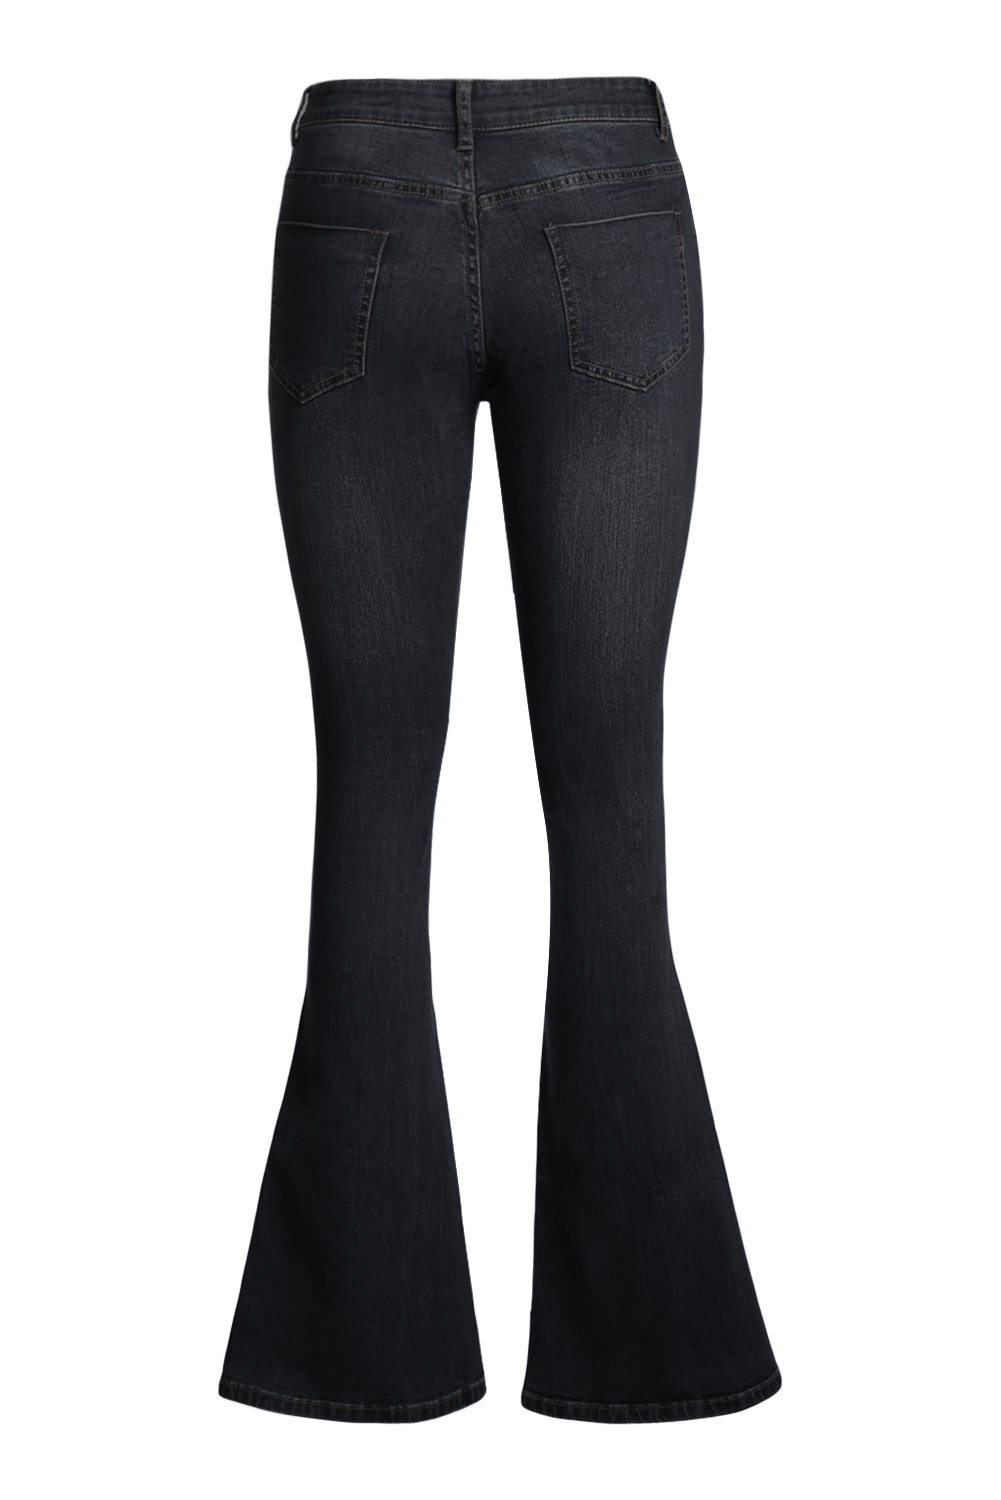 Blackwash vintage wide leg jeans